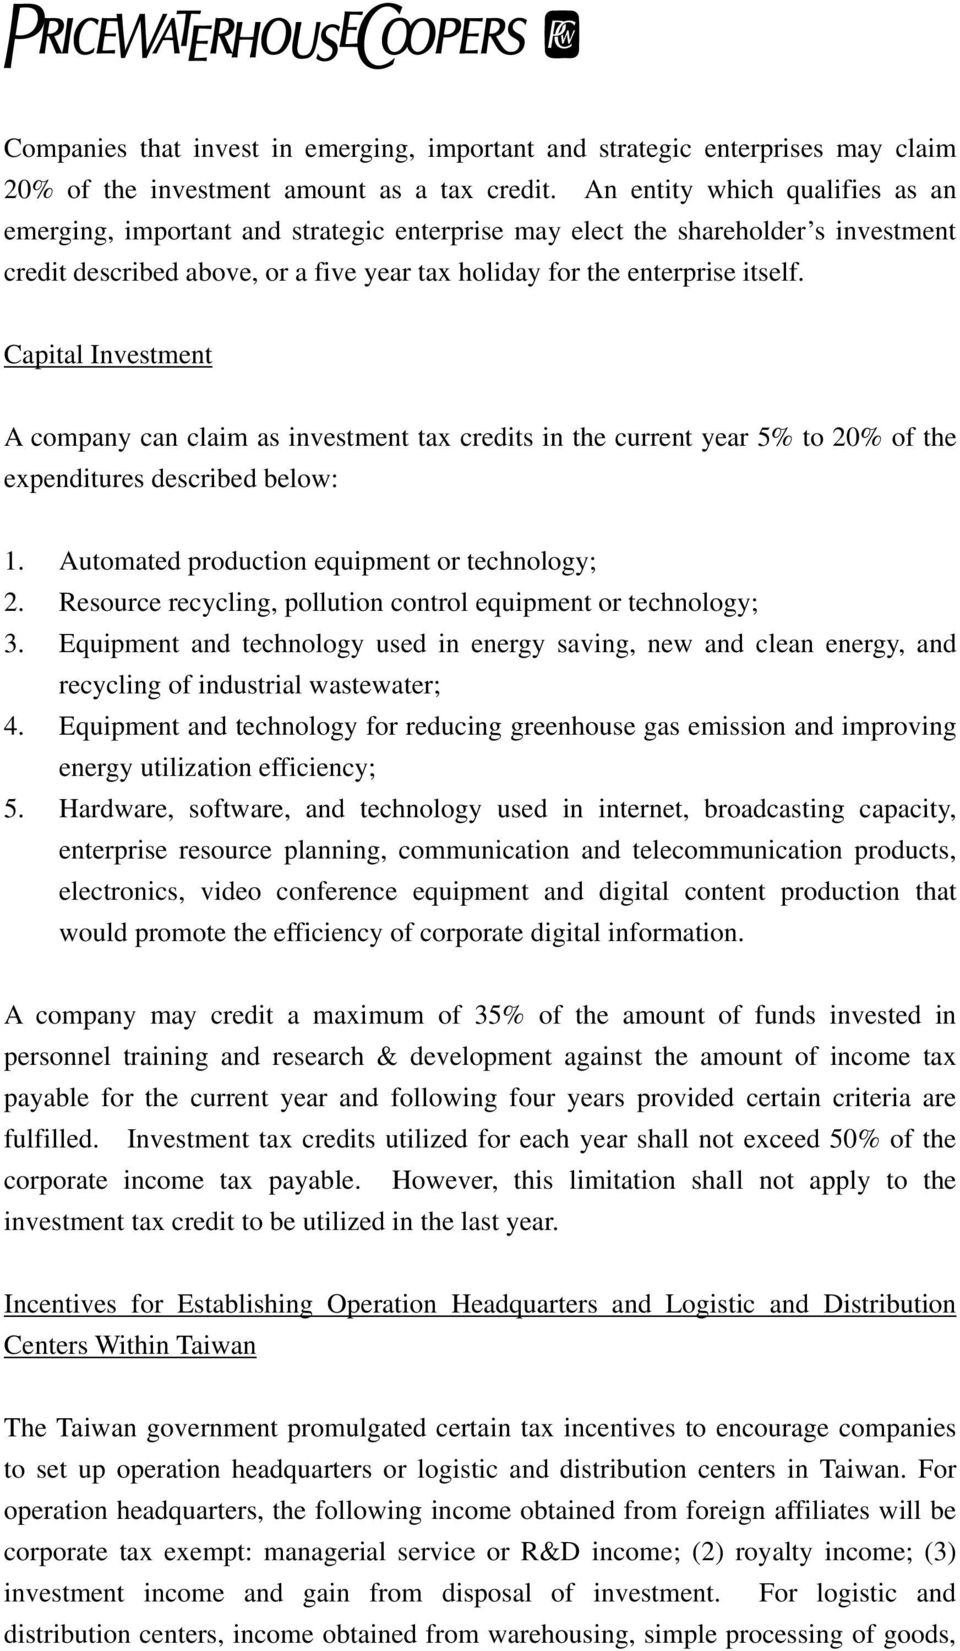 Capital Investment A company can claim as investment tax credits in the current year 5% to 20% of the expenditures described below: 1. Automated production equipment or technology; 2.